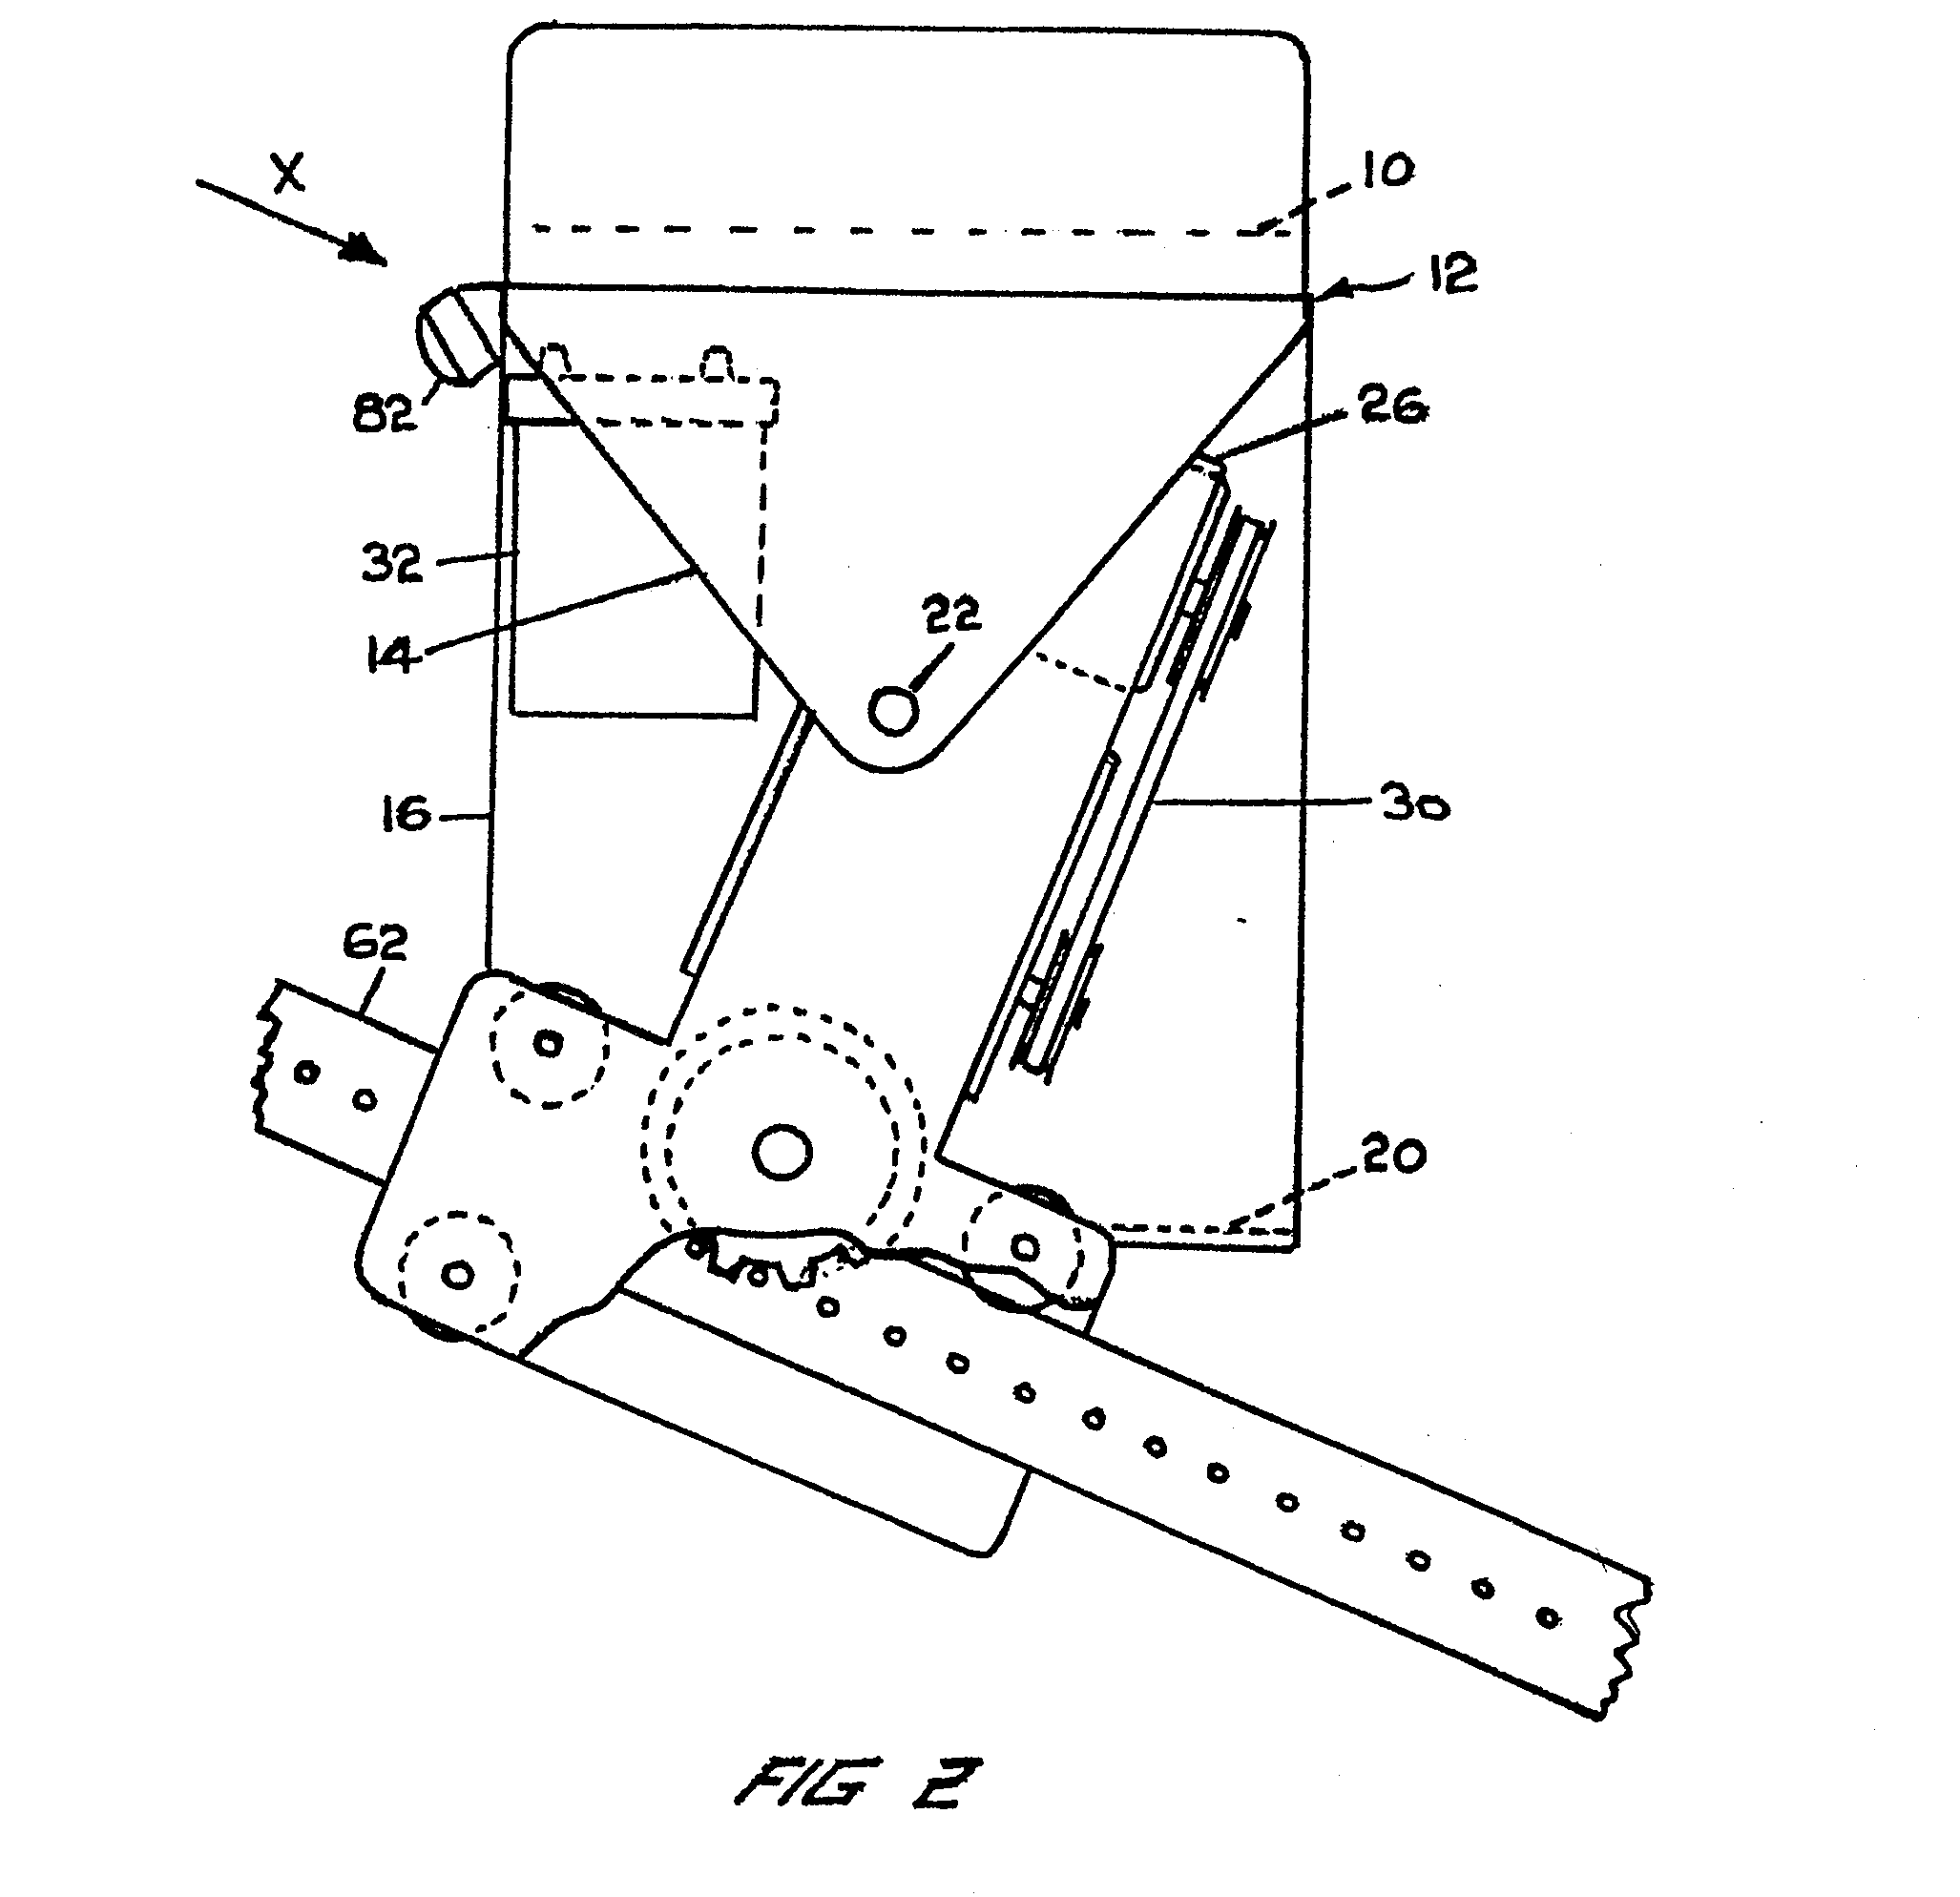 patent ep0137577a1 - a stair lift